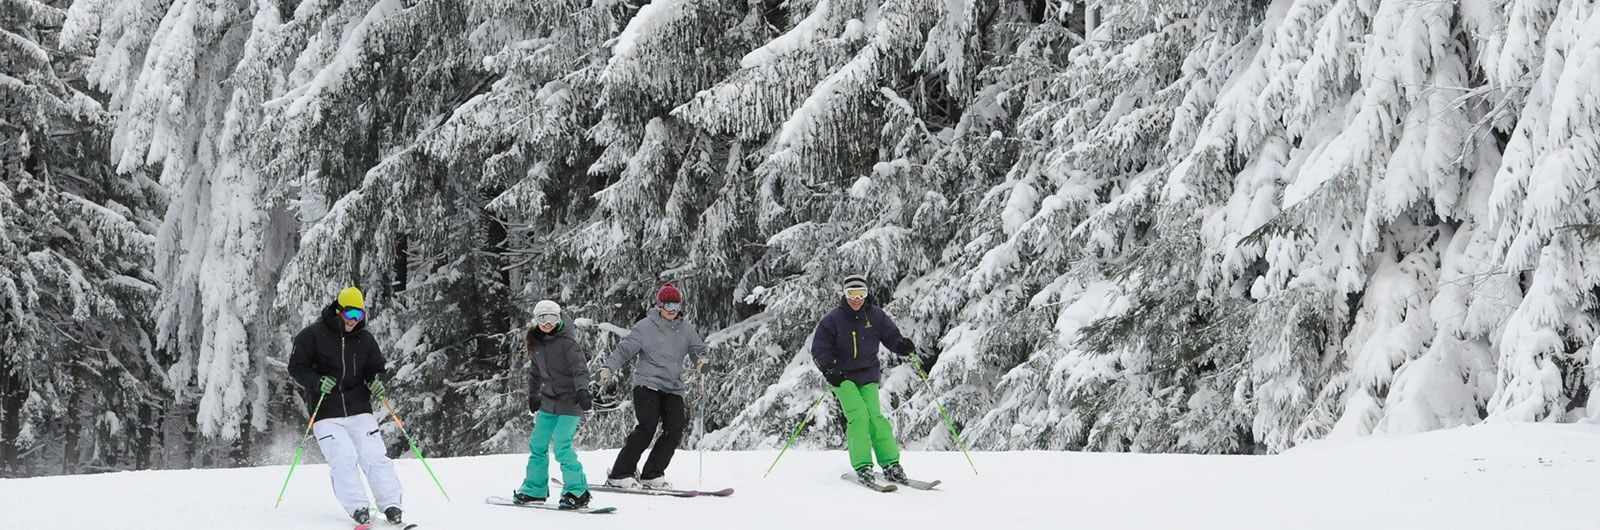 Skiers and snowboarders on snowy Tannenbaum slope